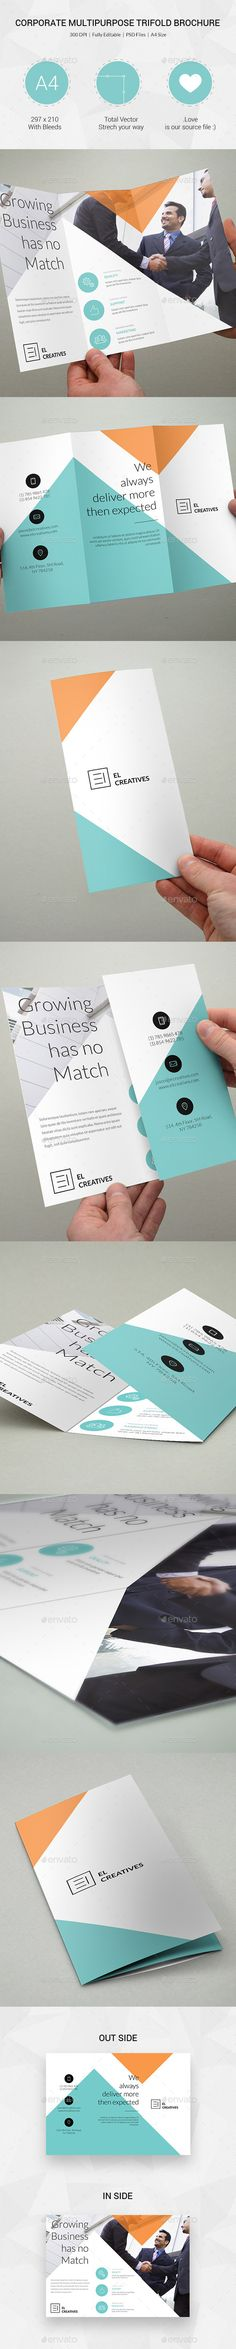 Minimal Creative Trifold Brochure Template #design Buy Now: http://graphicriver.net/item/minimal-creative-trifold-brochure-16/12850944?ref=ksioks